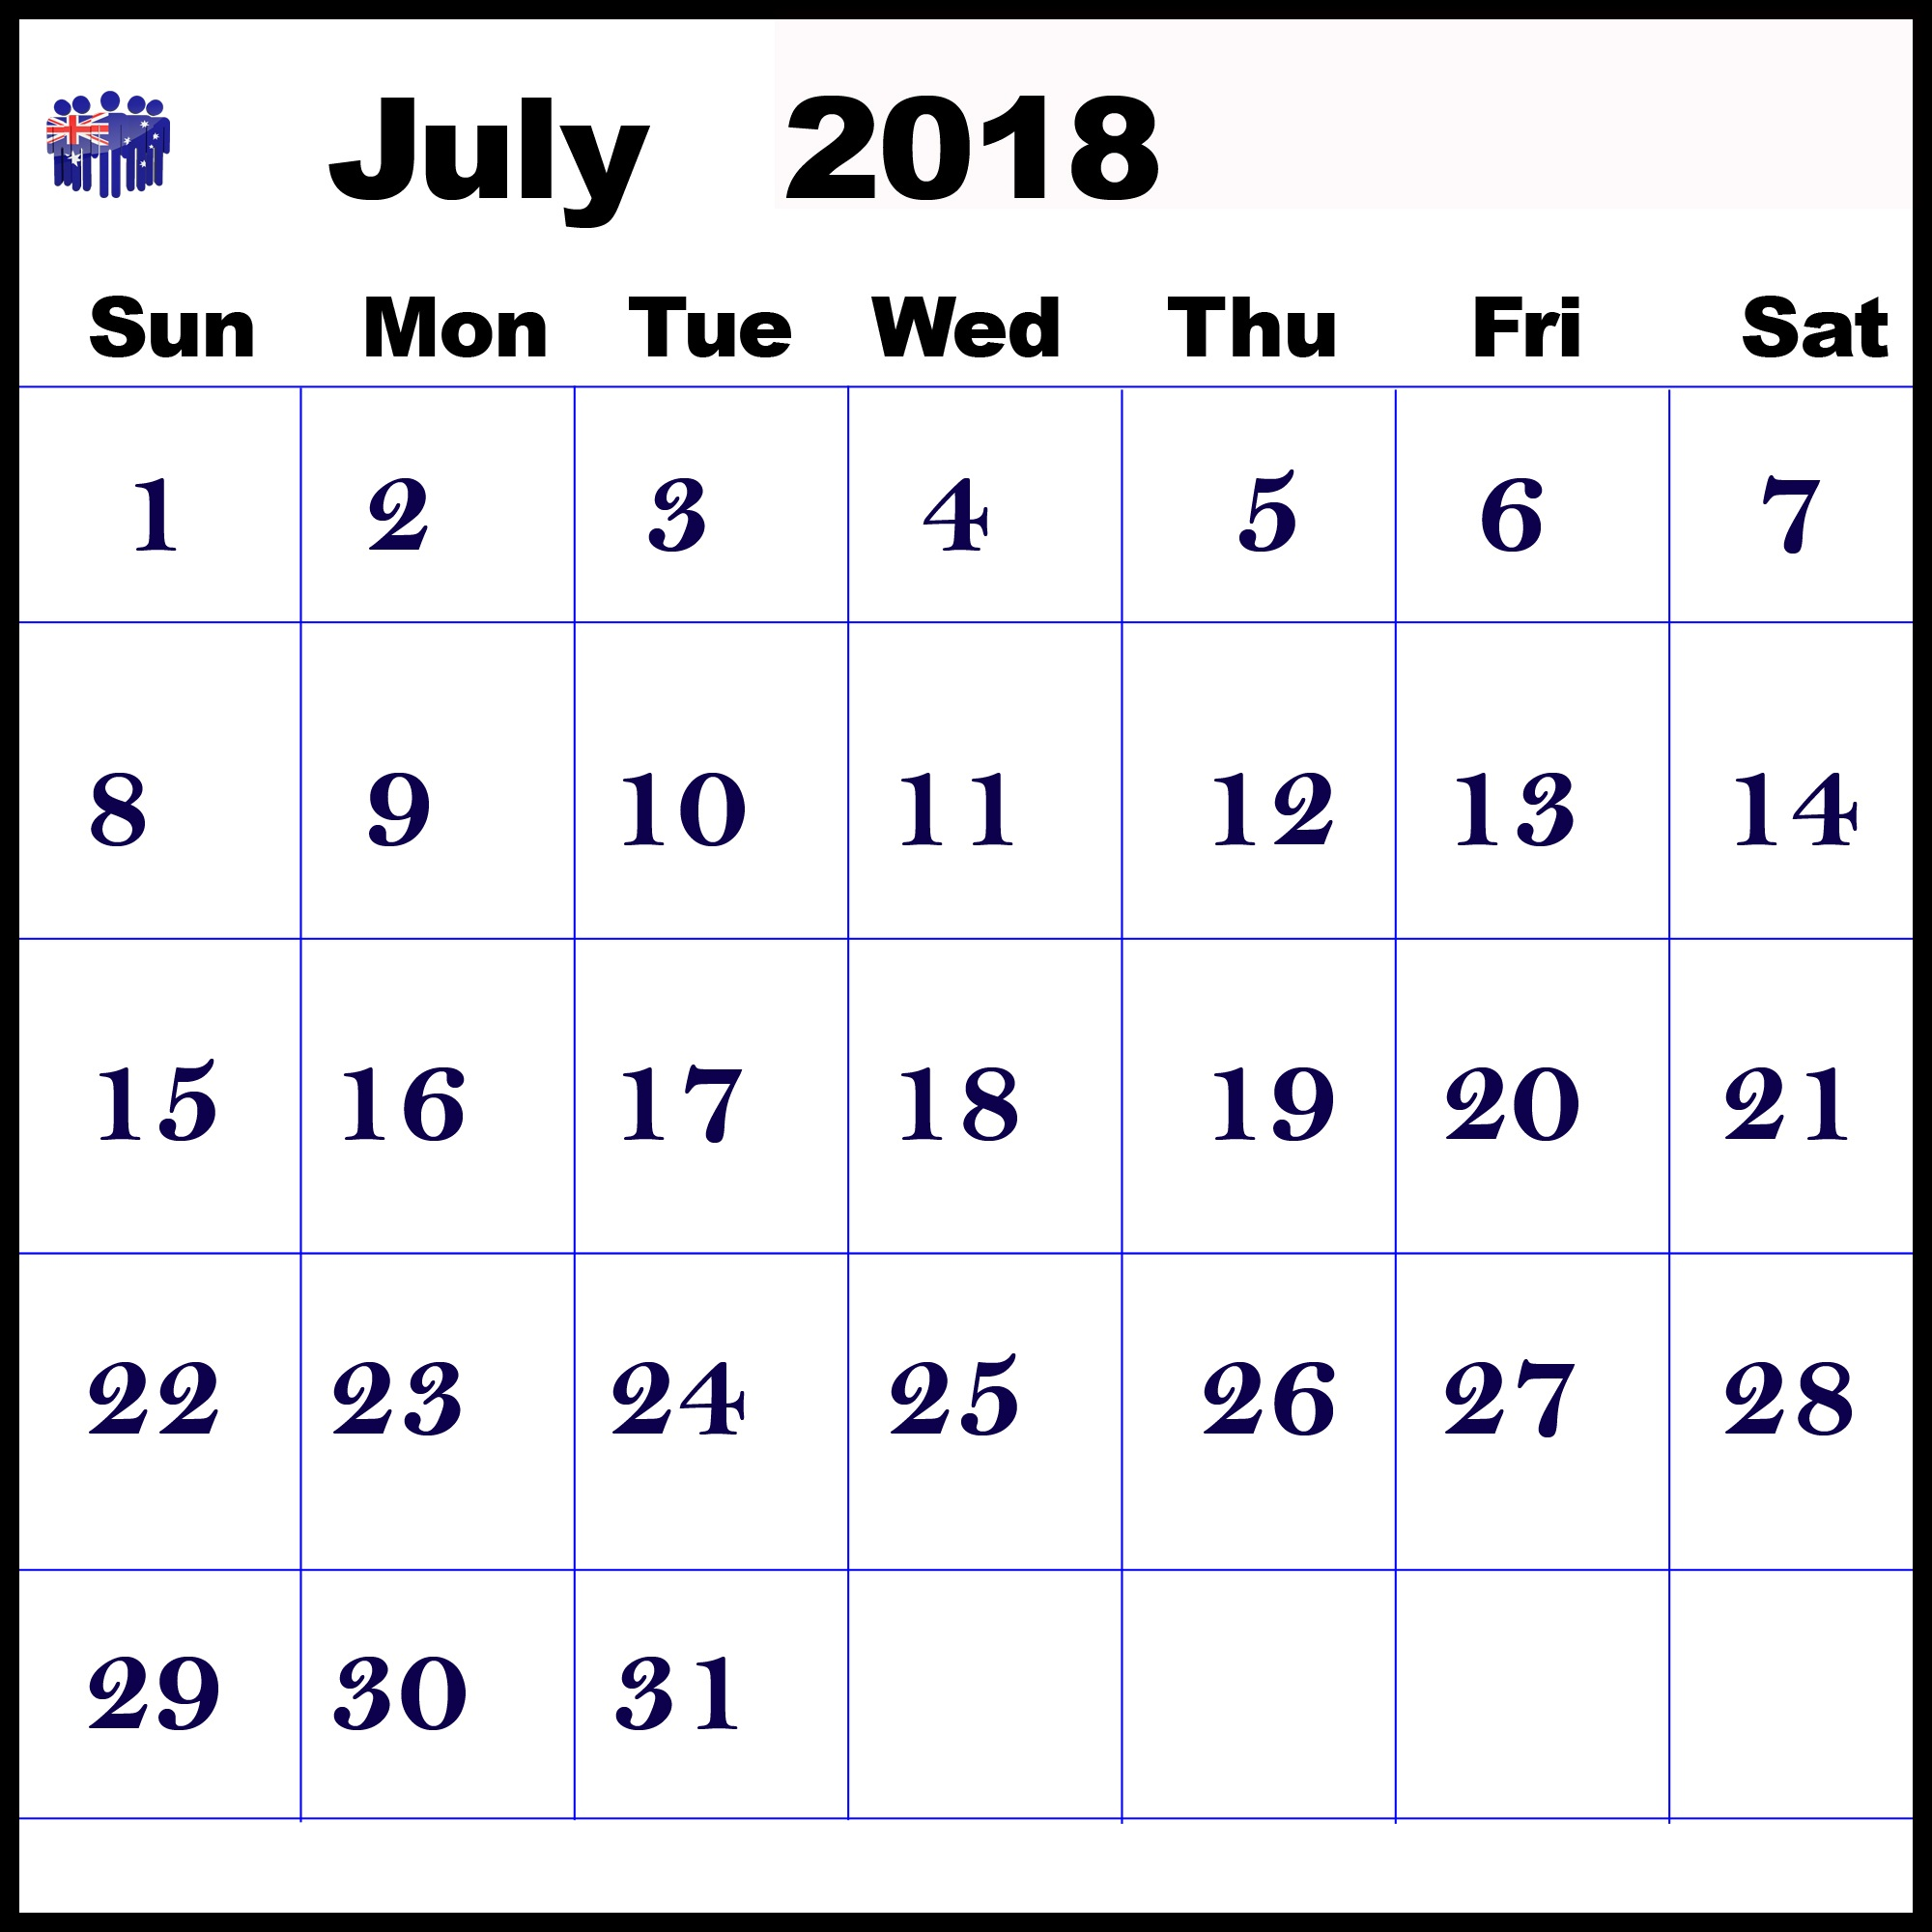 July 2018 Calendar Australia Bank Holidays